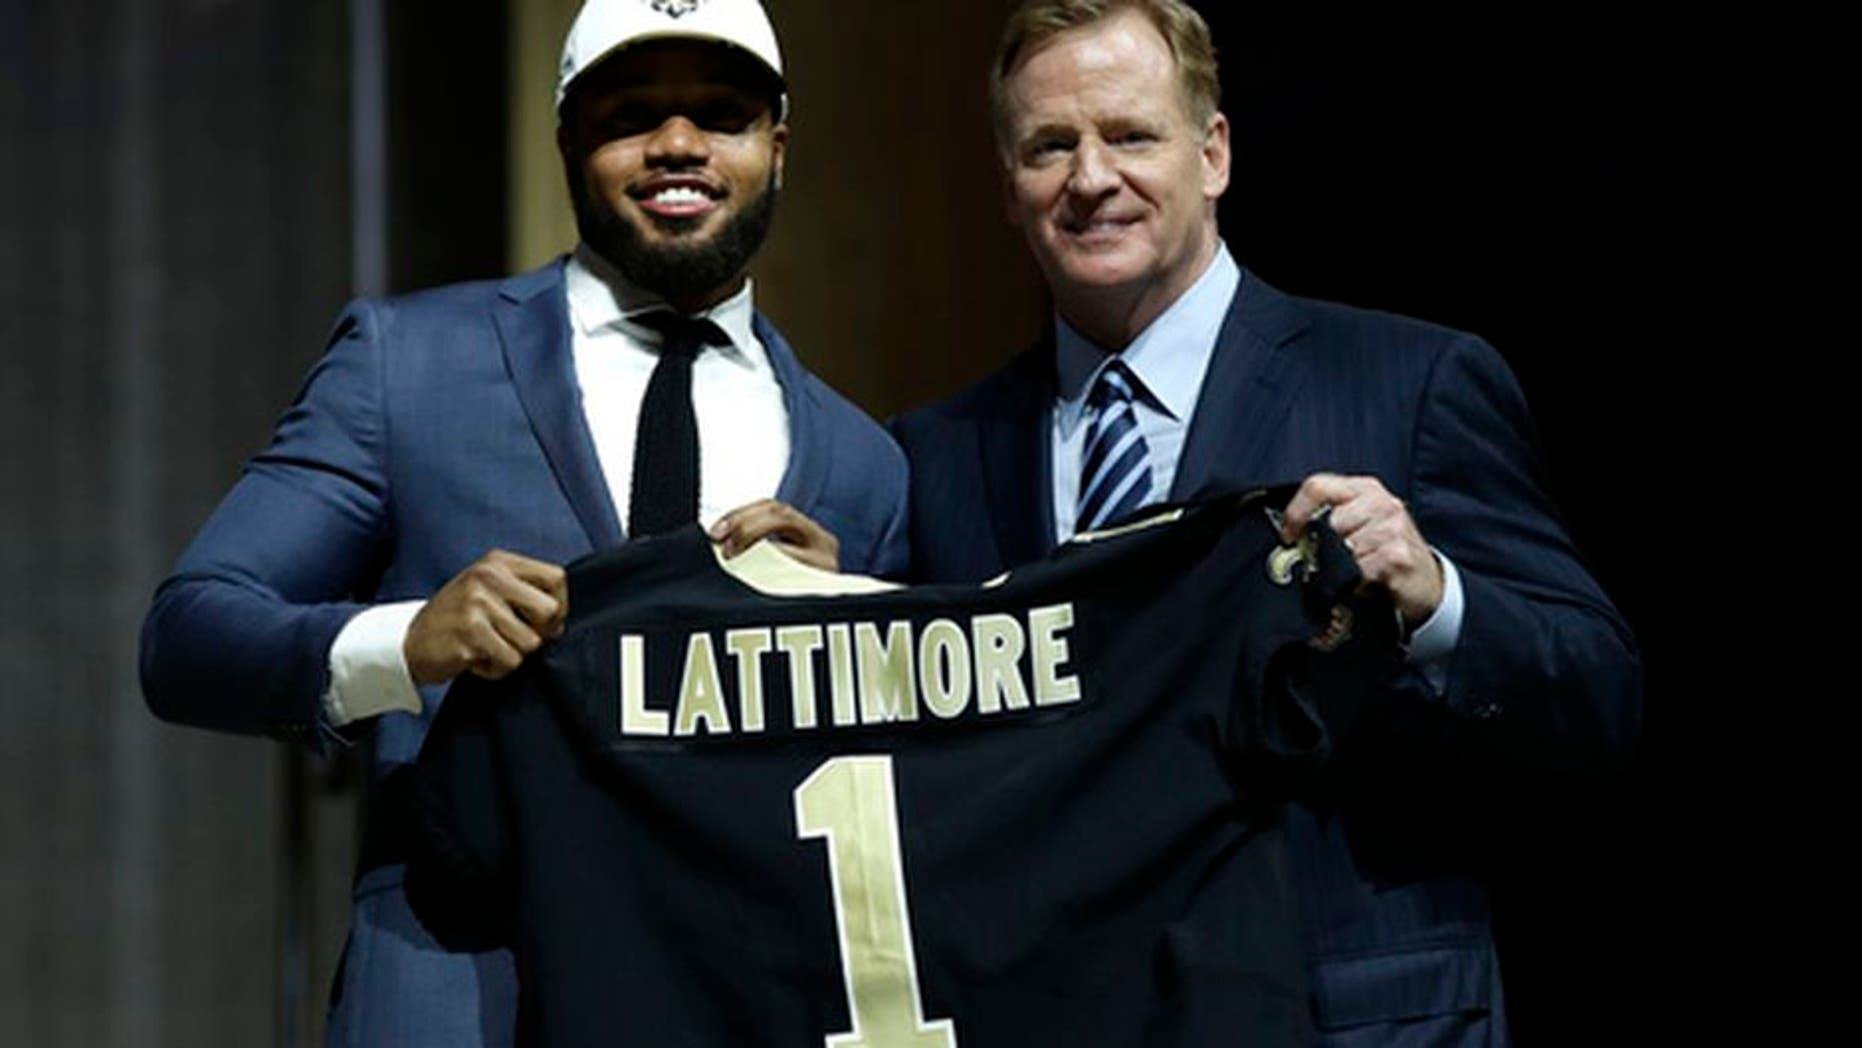 Ohio State's Marshon Lattimore, left, poses with NFL commissioner Roger Goodell after being selected by the New Orleans Saints during the first round of the 2017 NFL football draft, Thursday, April 27, 2017, in Philadelphia. (AP Photo/Matt Rourke)